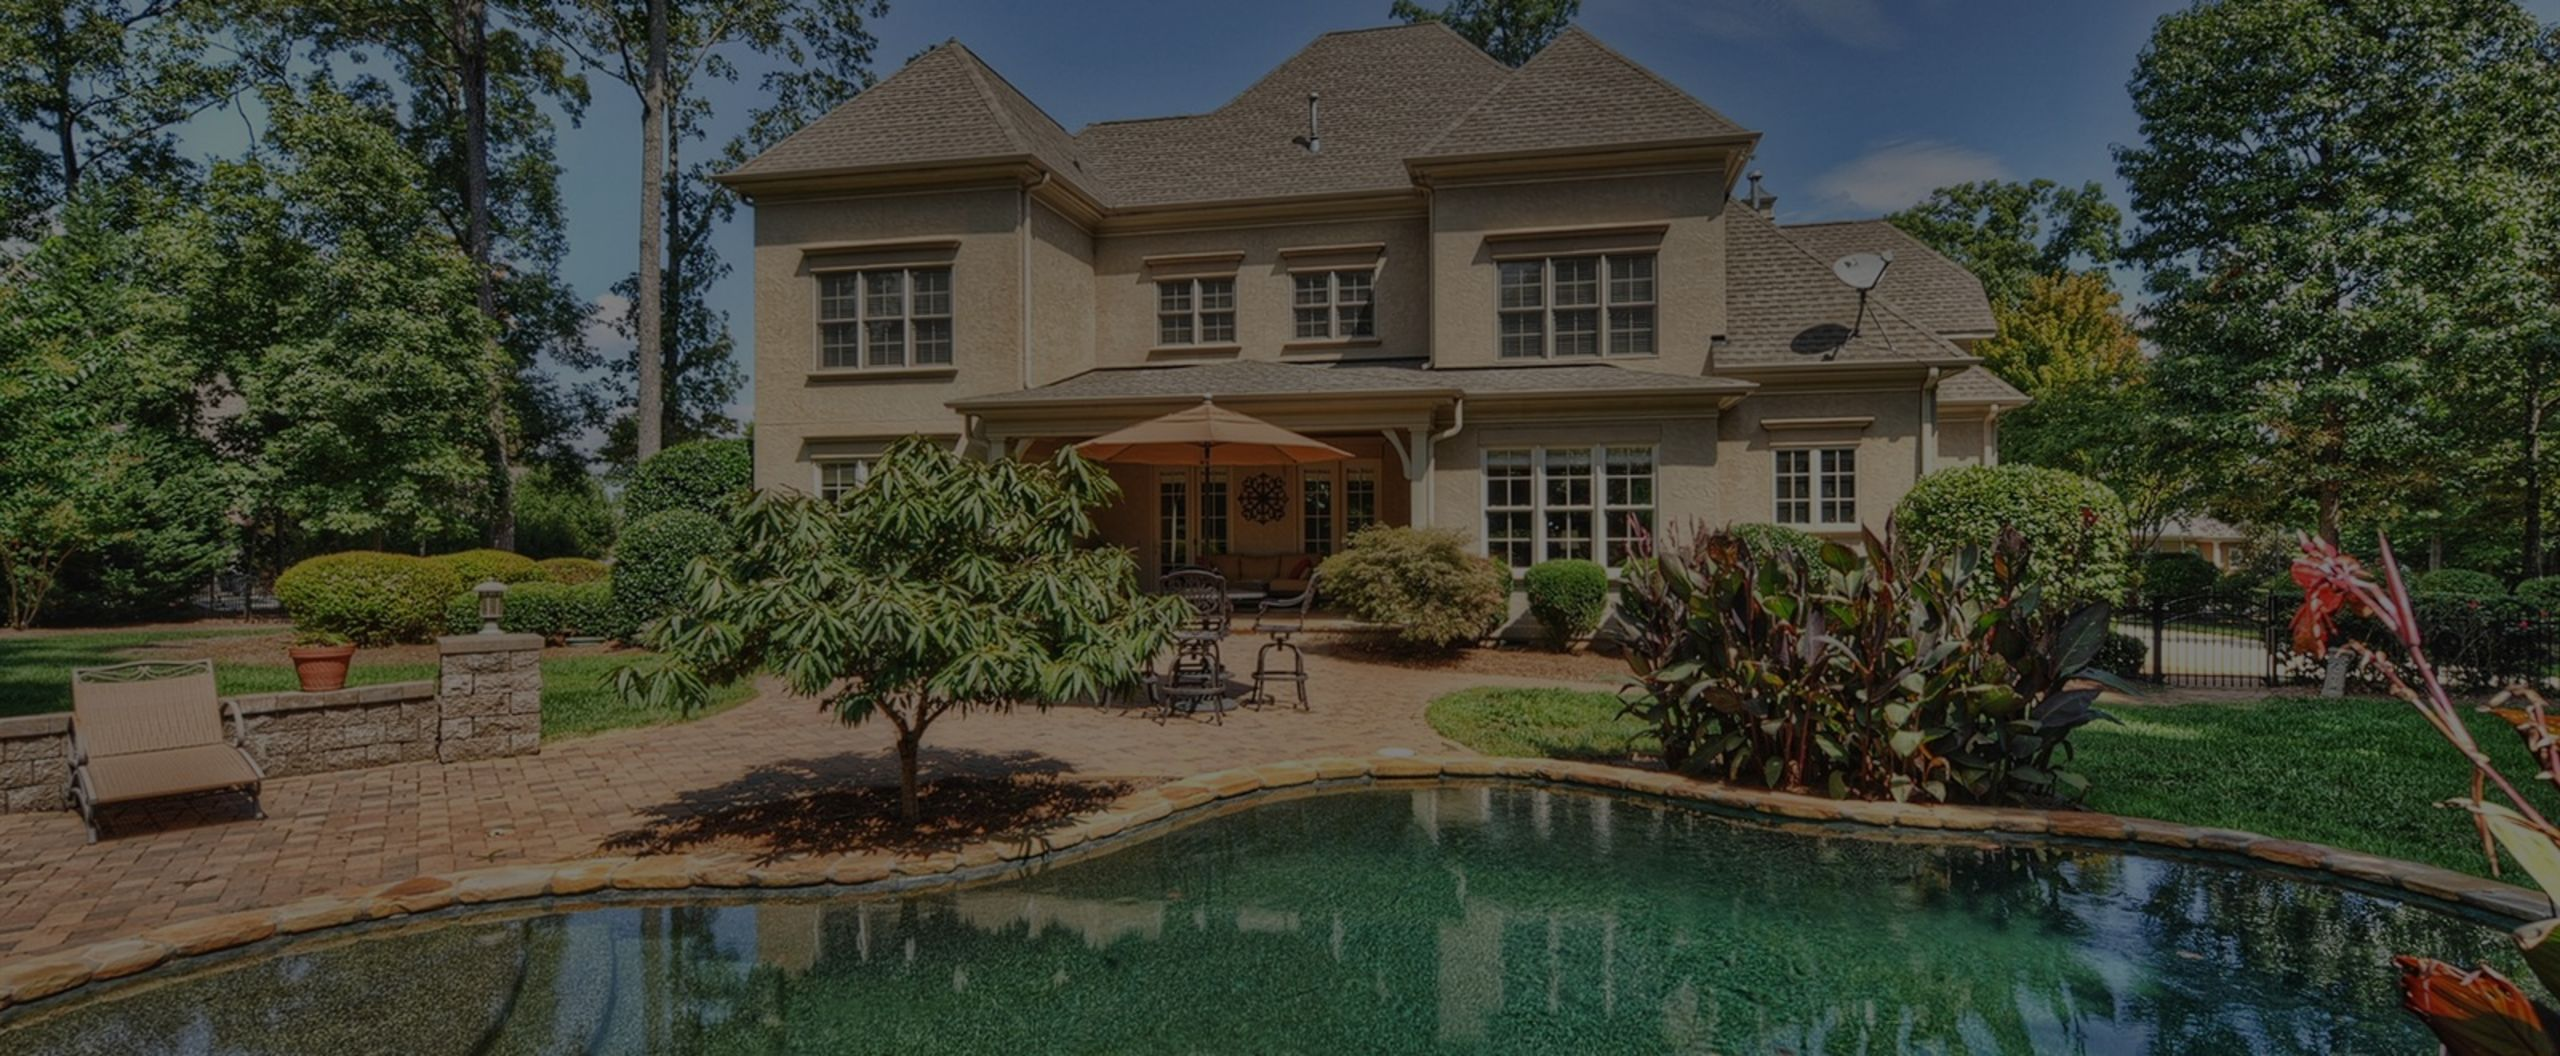 Relax and enjoy this backyard oasis near near Lake Norman.